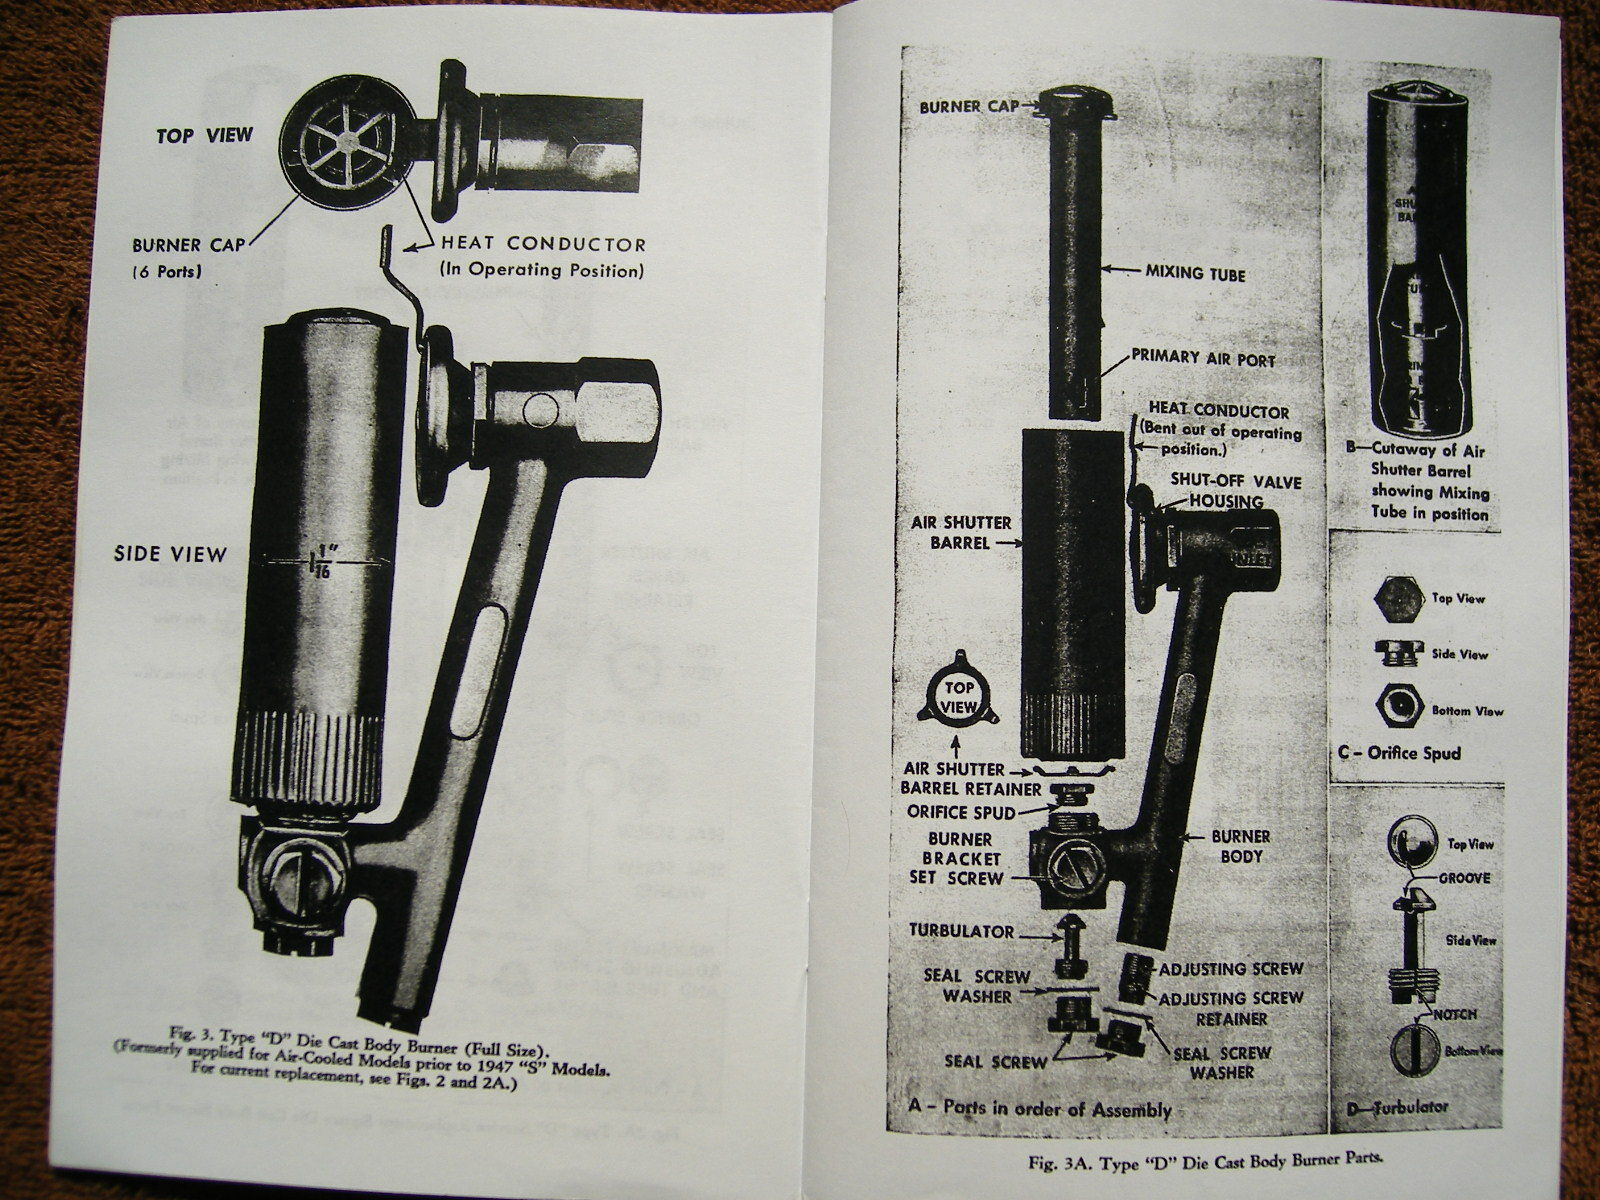 Servel Refrigerator Schematic Diagrams Hotpoint Wiring Gas Service Manual For 1933 1957 Models 2 Of 12